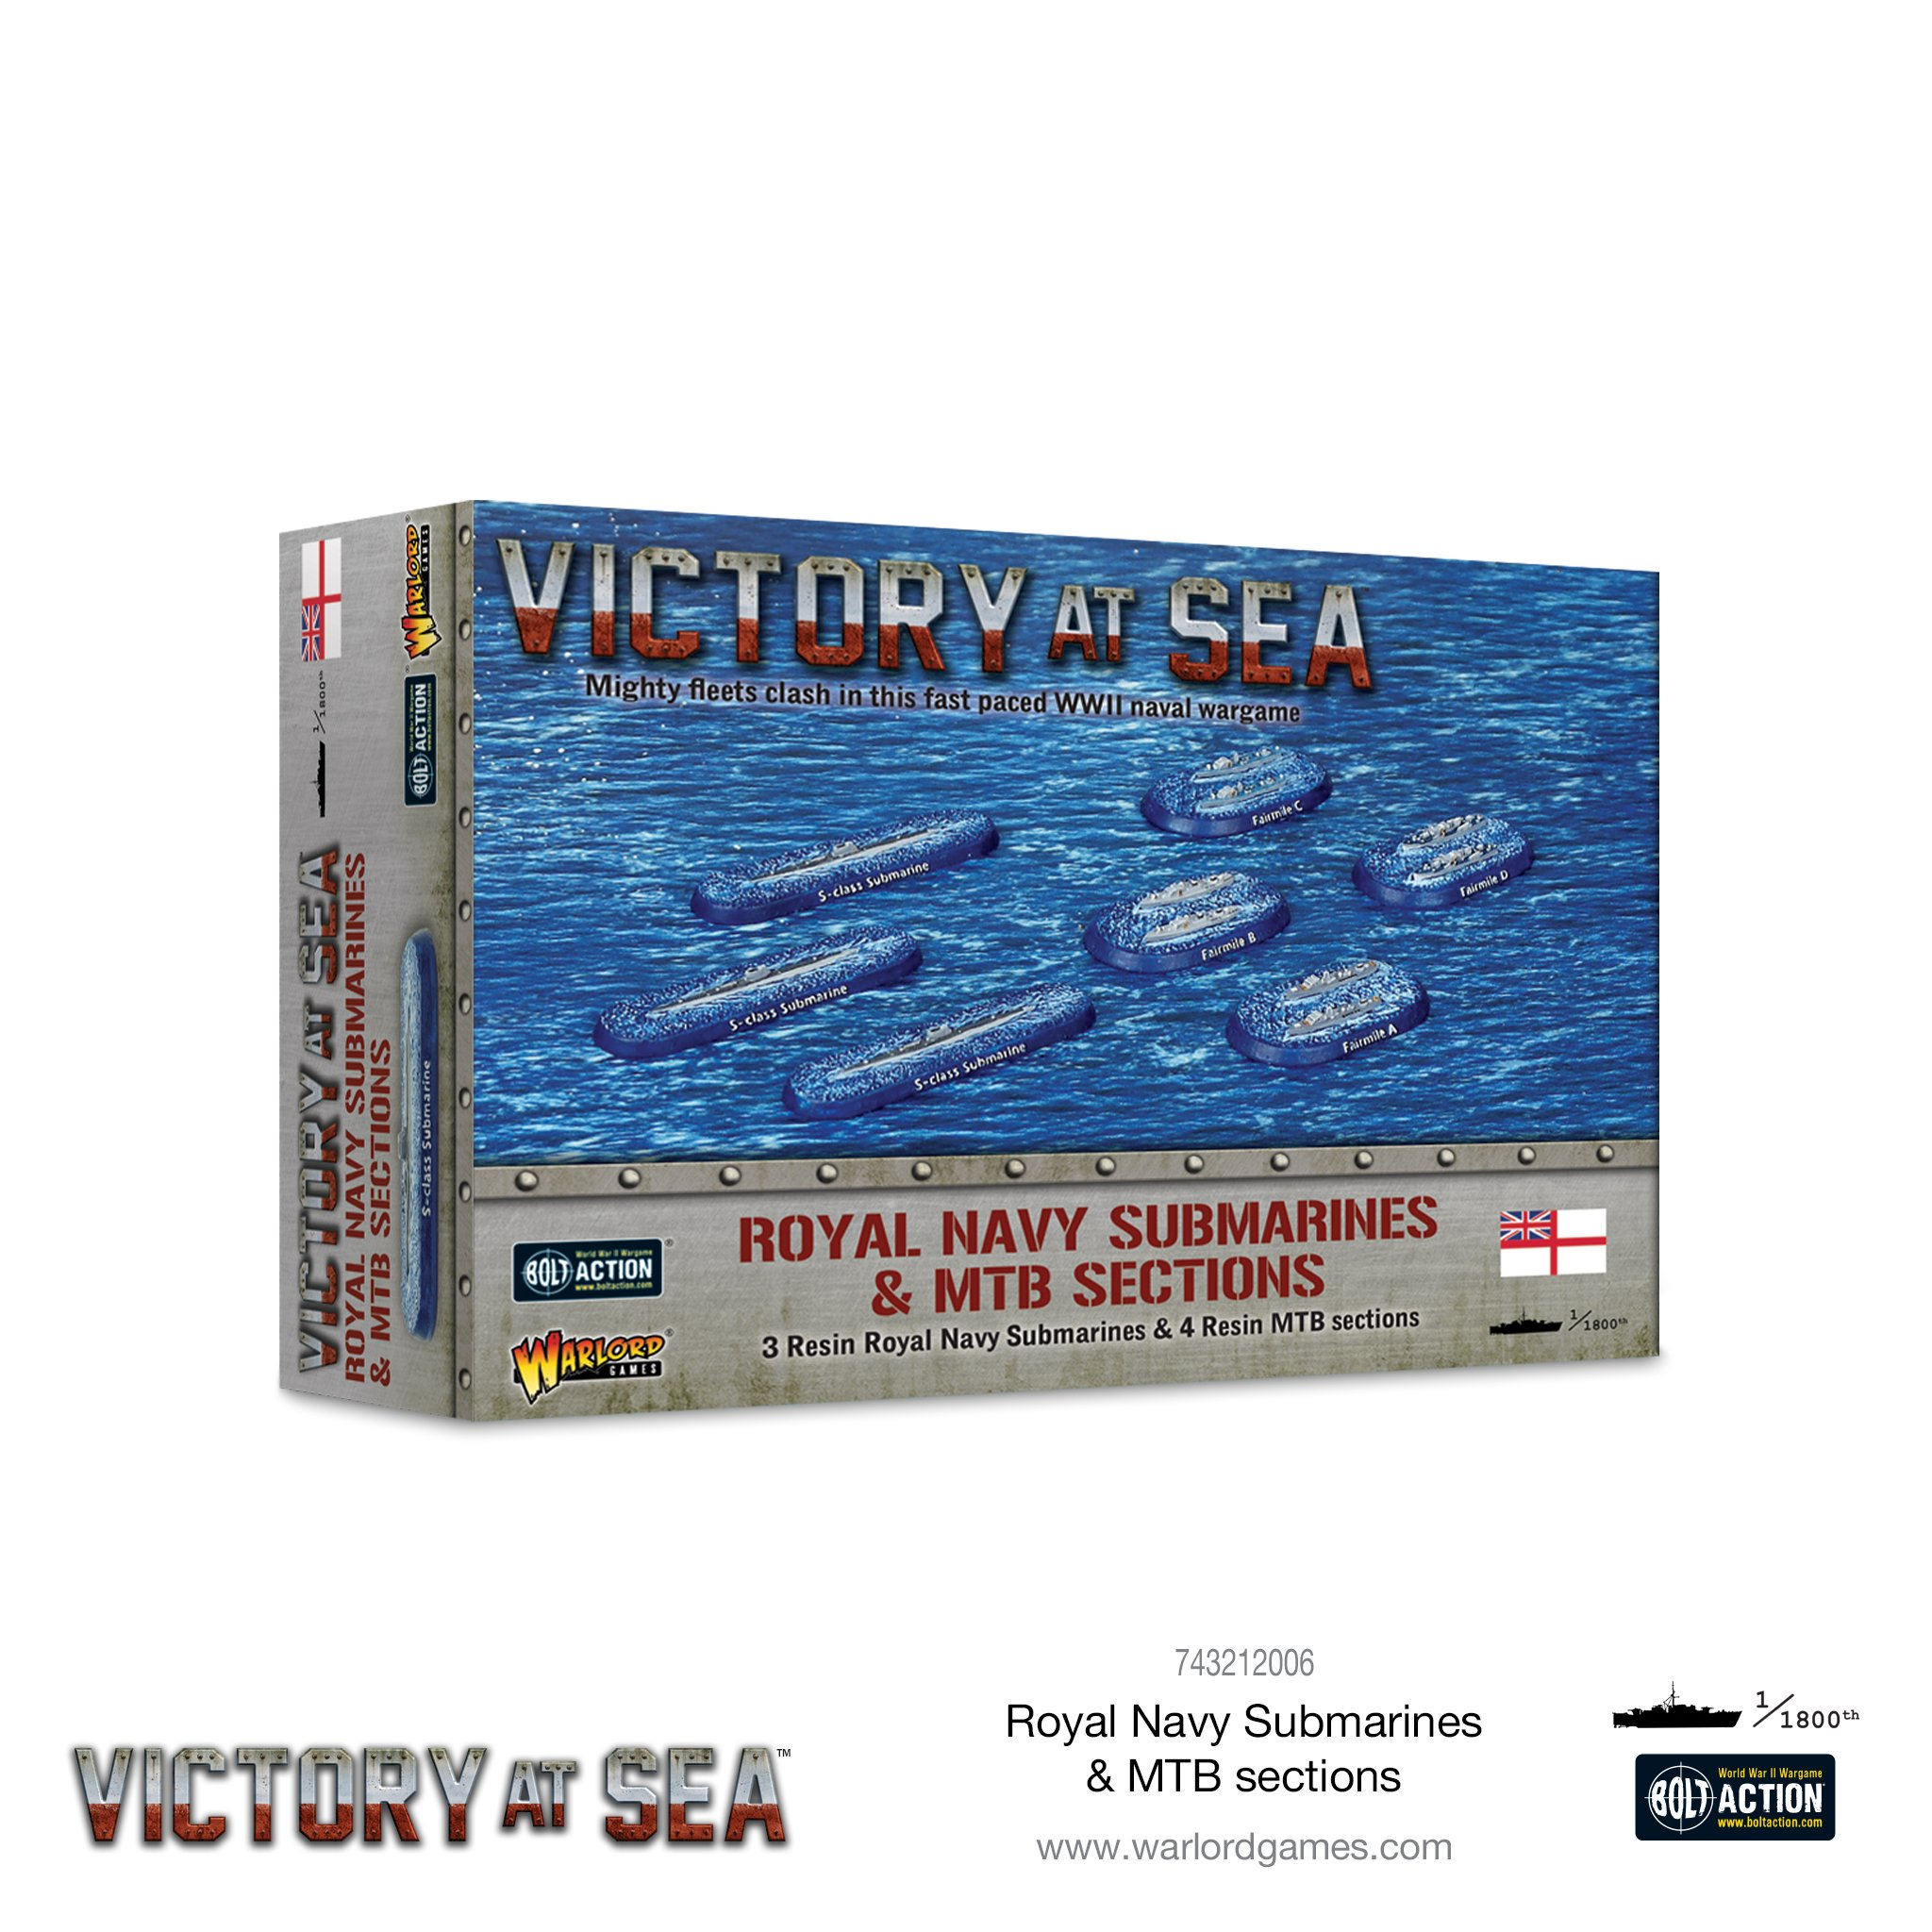 Victory at Sea: Royal Navy Submarines & MTB sections